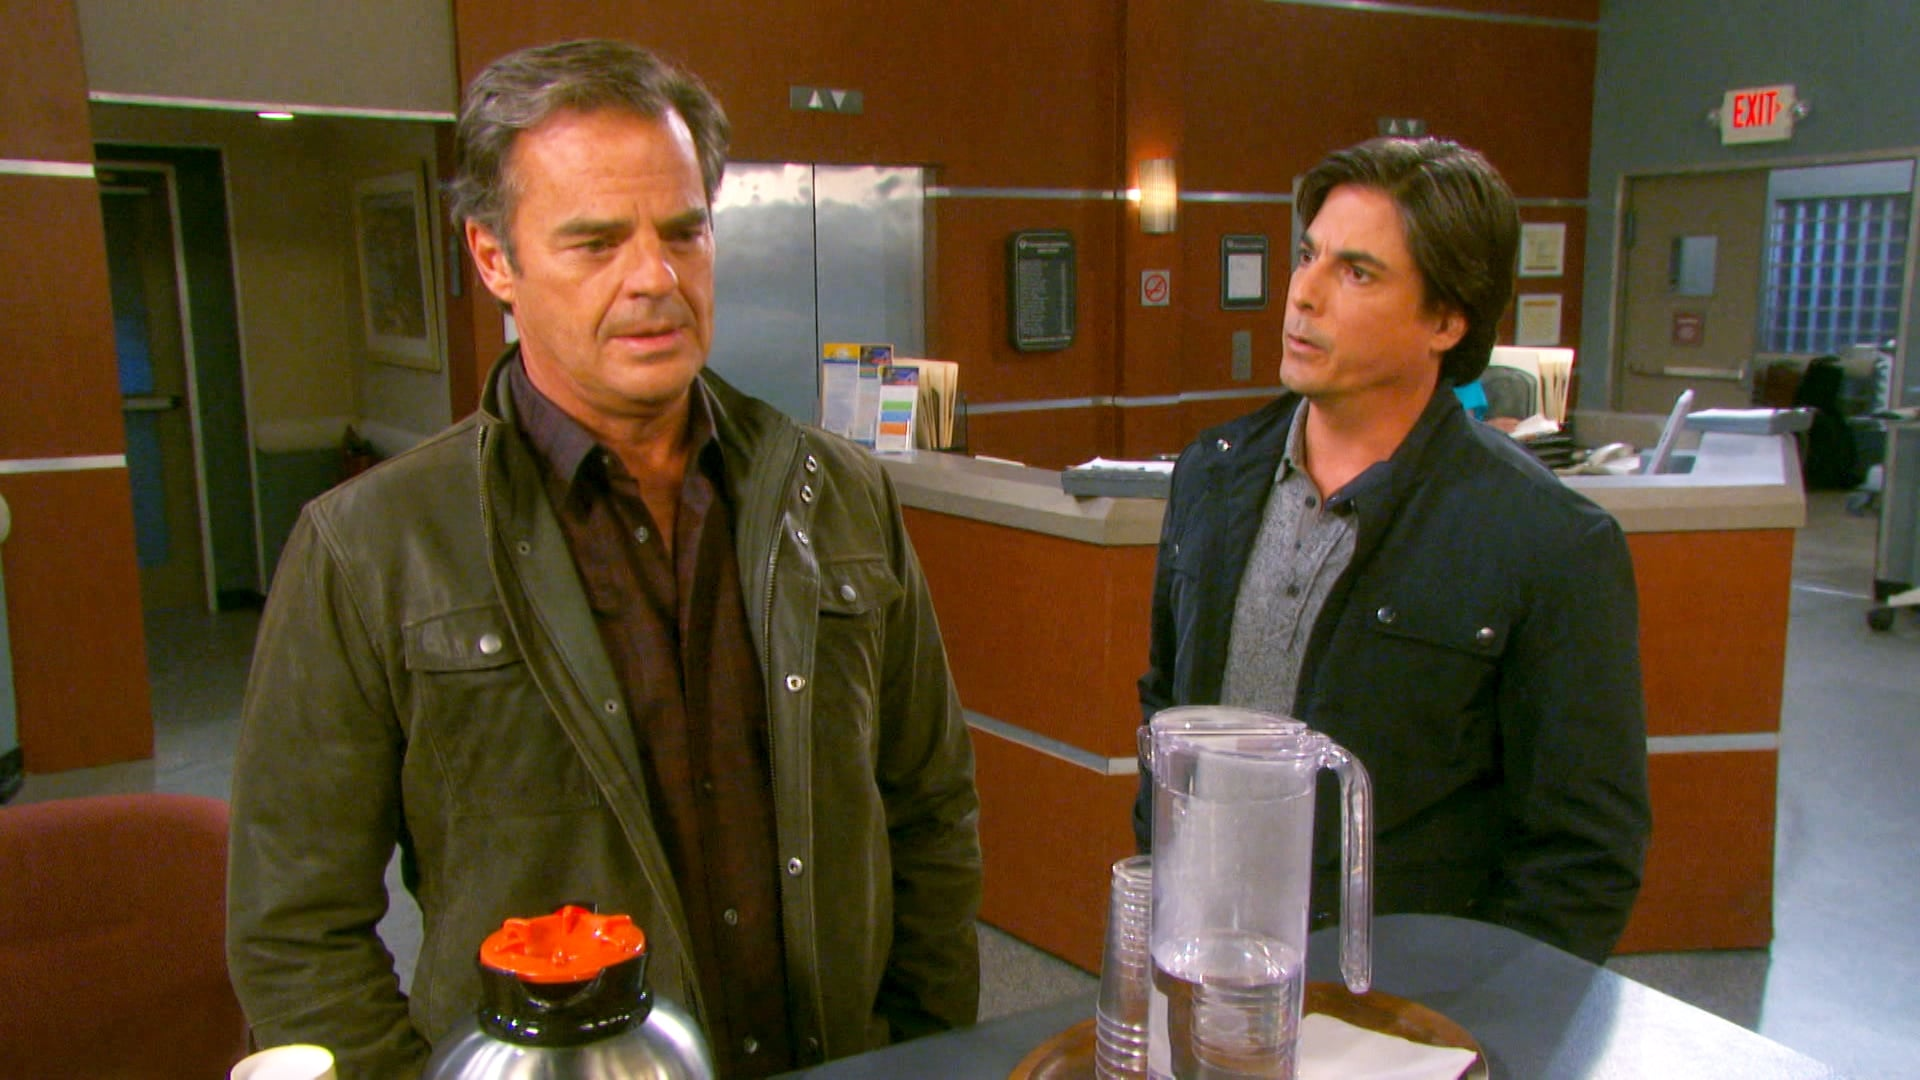 Days of Our Lives Season 52 :Episode 134  Wednesday March 29, 2017